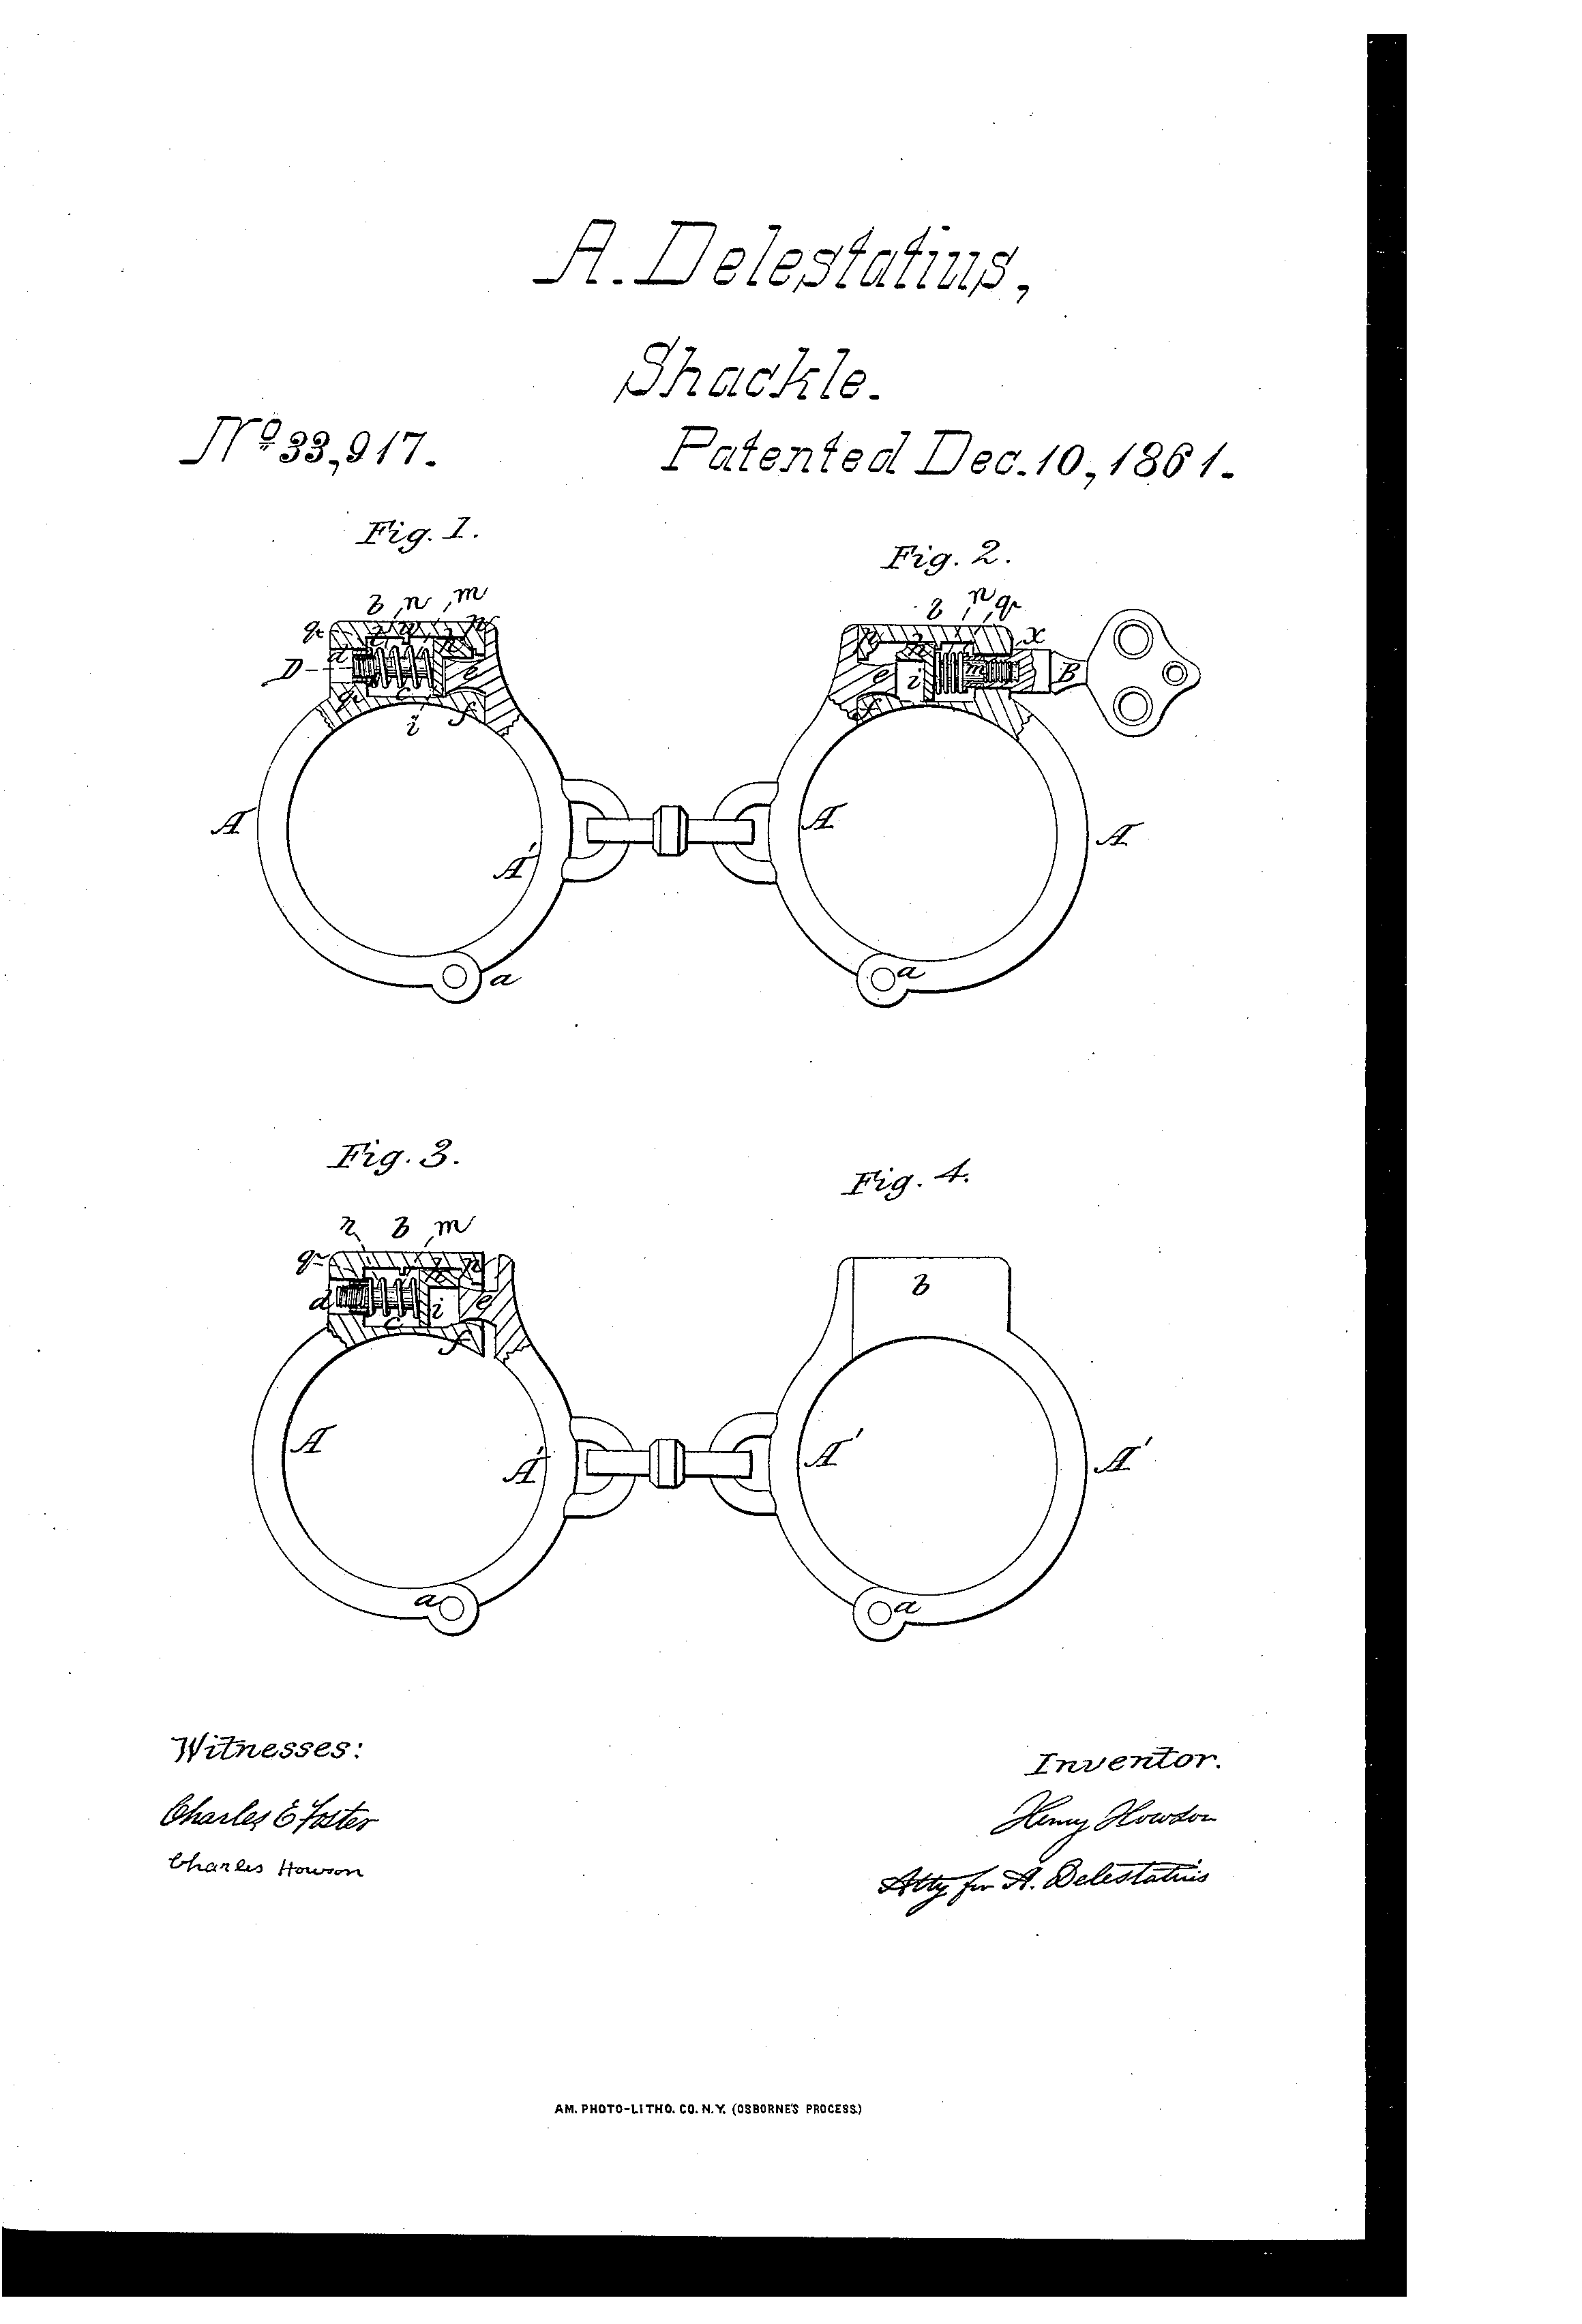 delestatious patent.png